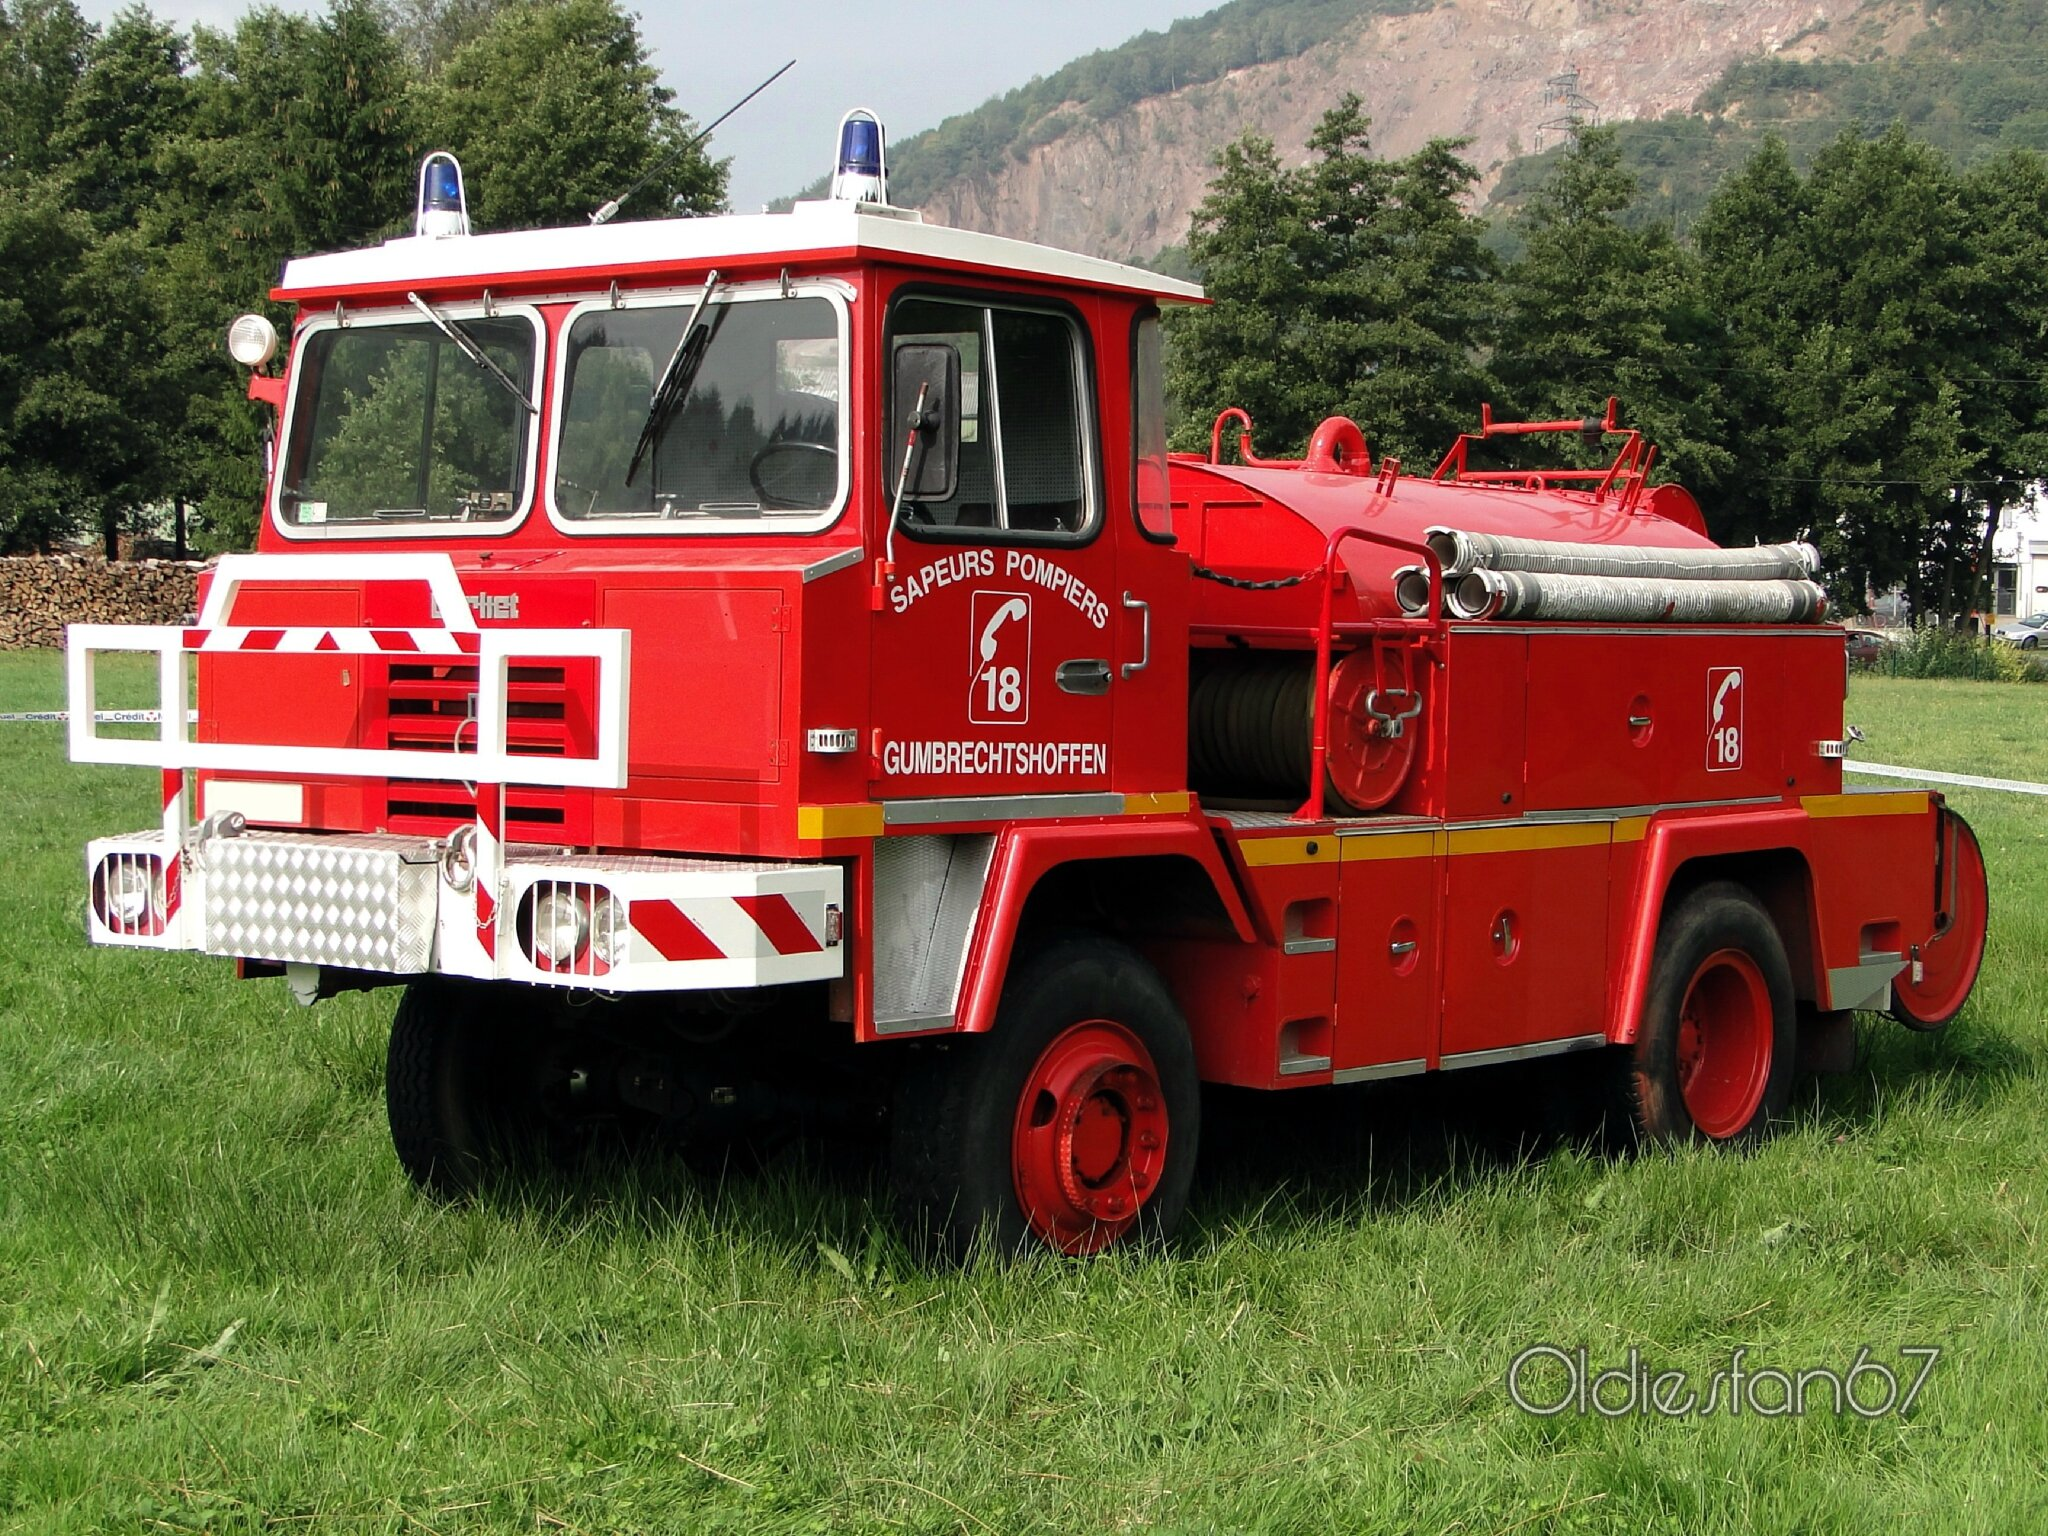 berliet v hicule de pompiers oldiesfan67 mon blog auto. Black Bedroom Furniture Sets. Home Design Ideas